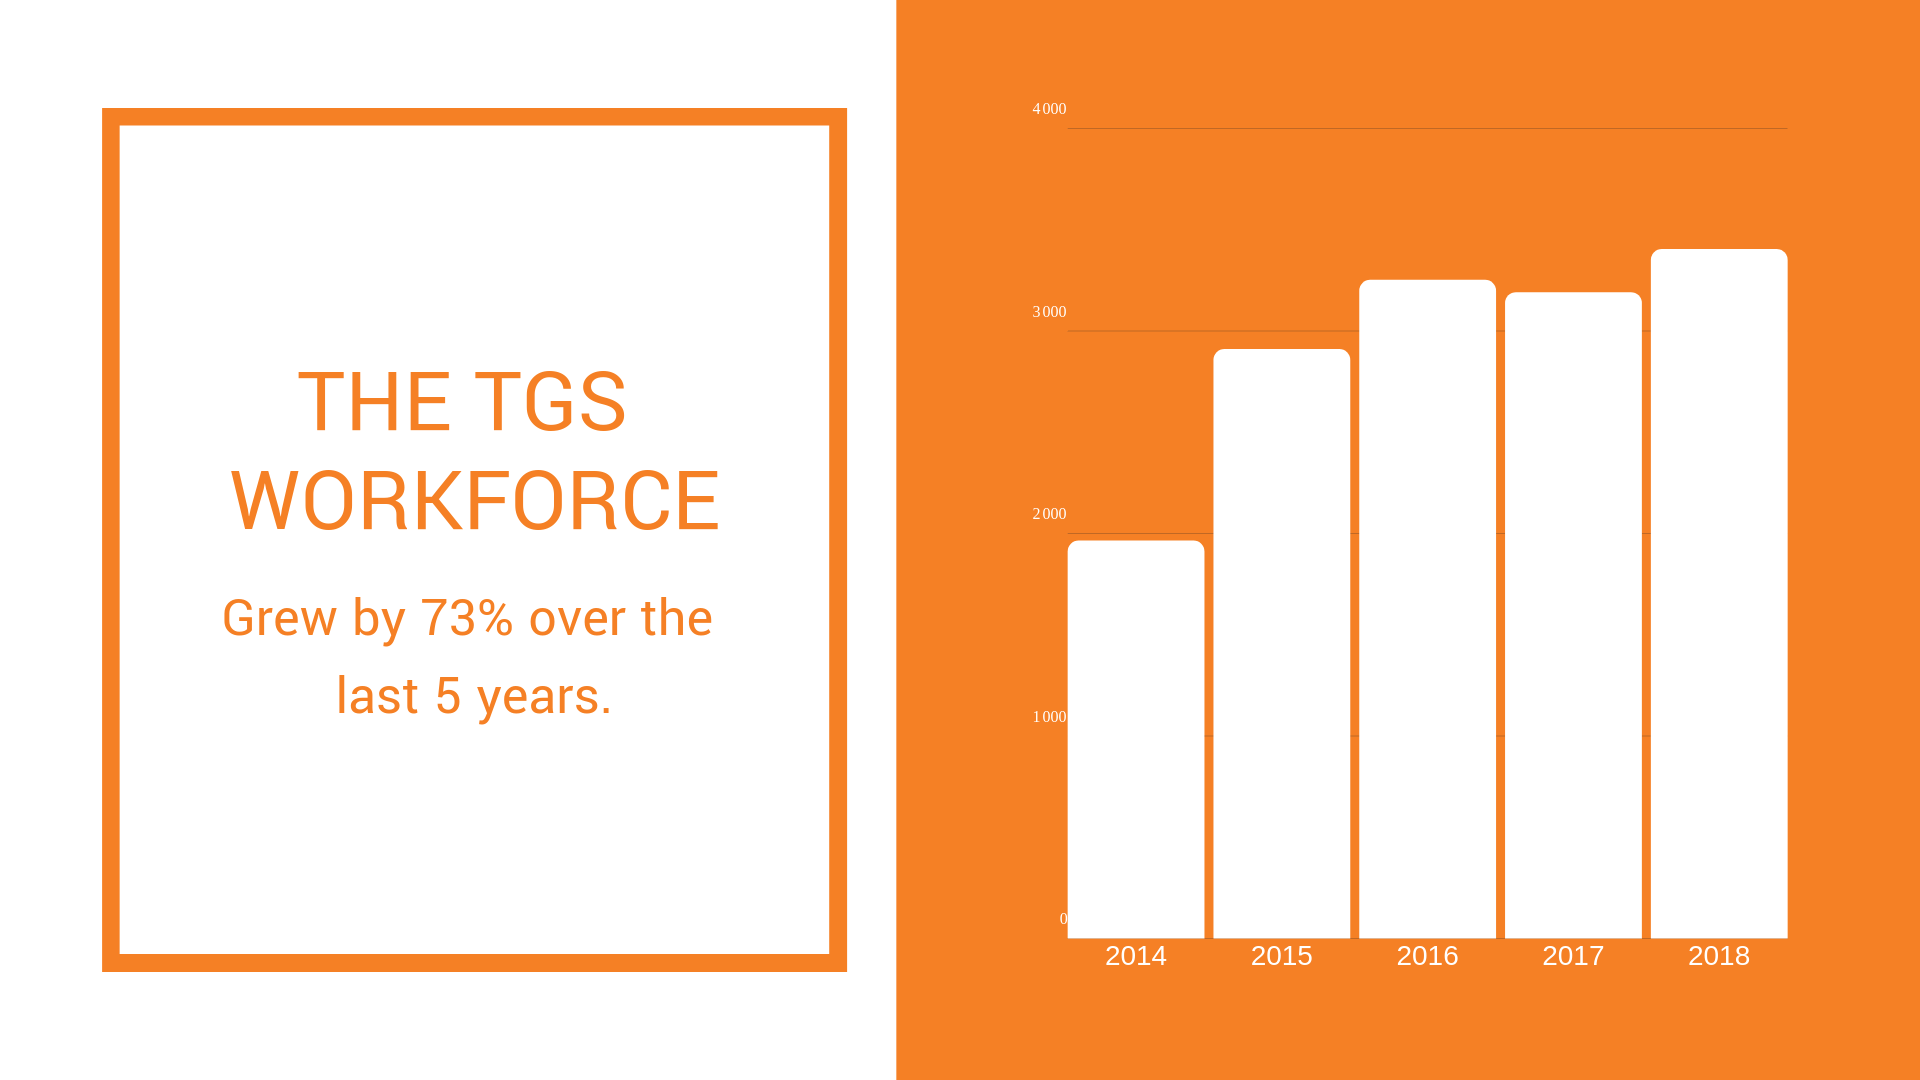 TGS Sustainable Development Goal progress - TGS GLOBAL